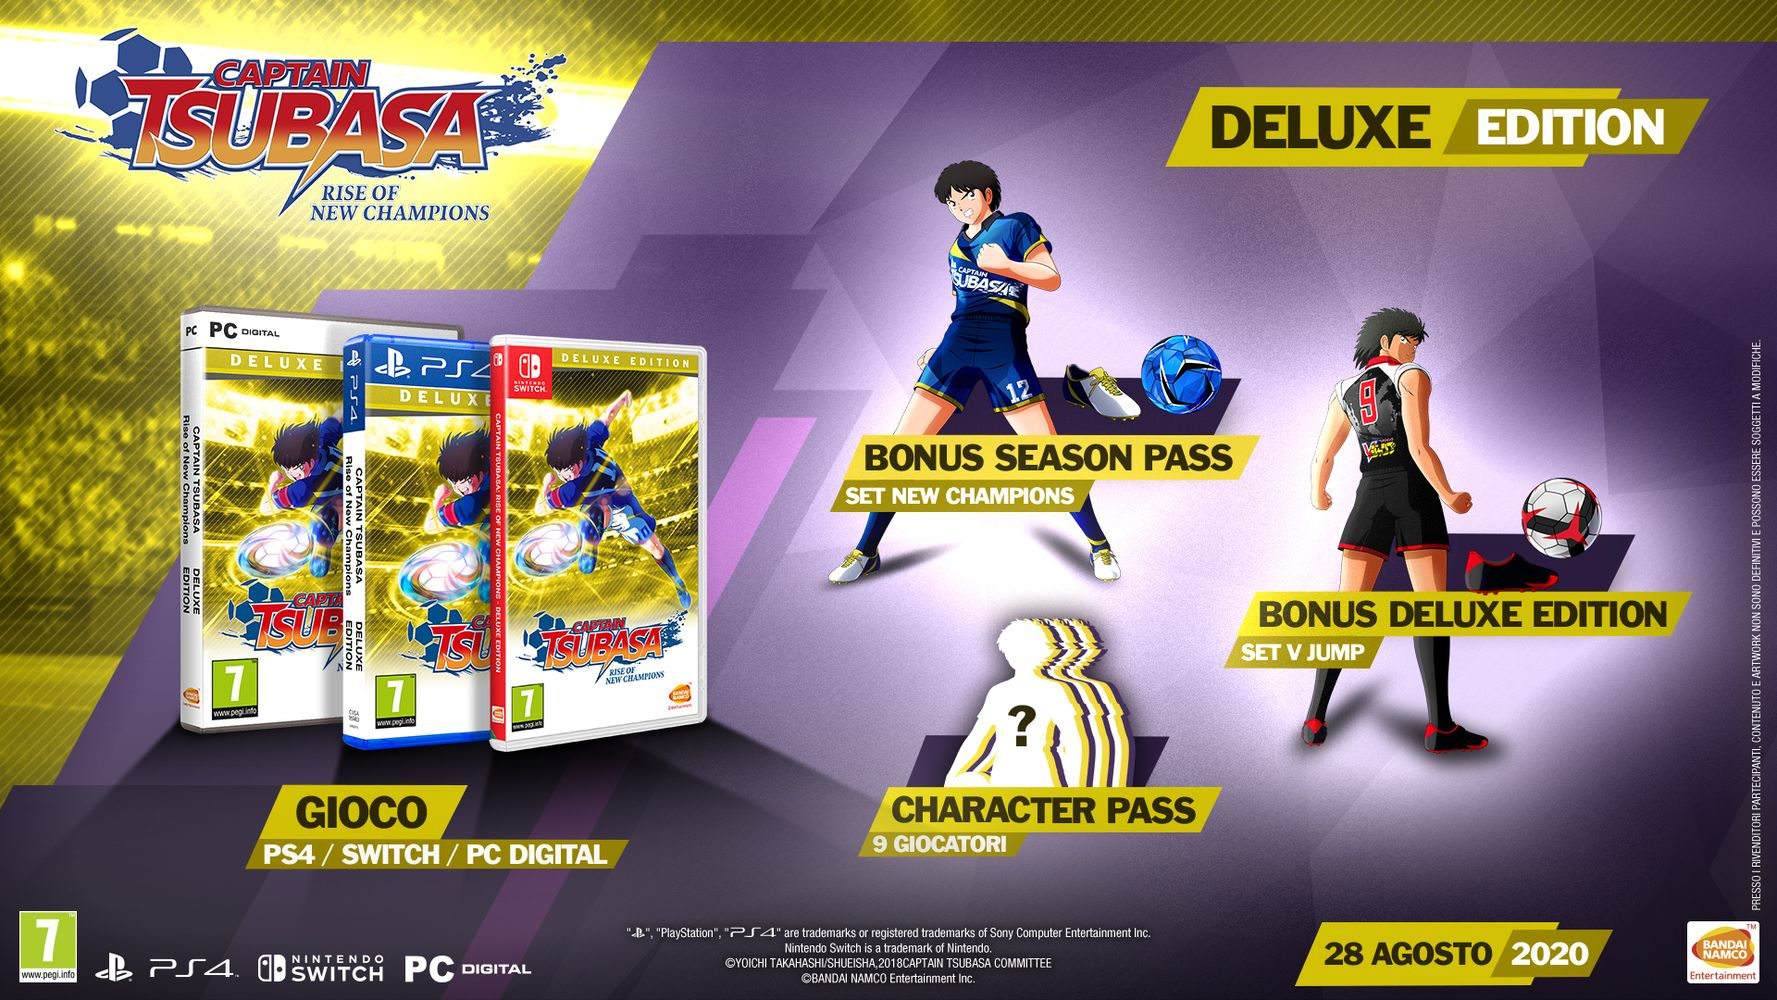 Deluxe Edition - Captain Tsubasa: Rise of New Champions